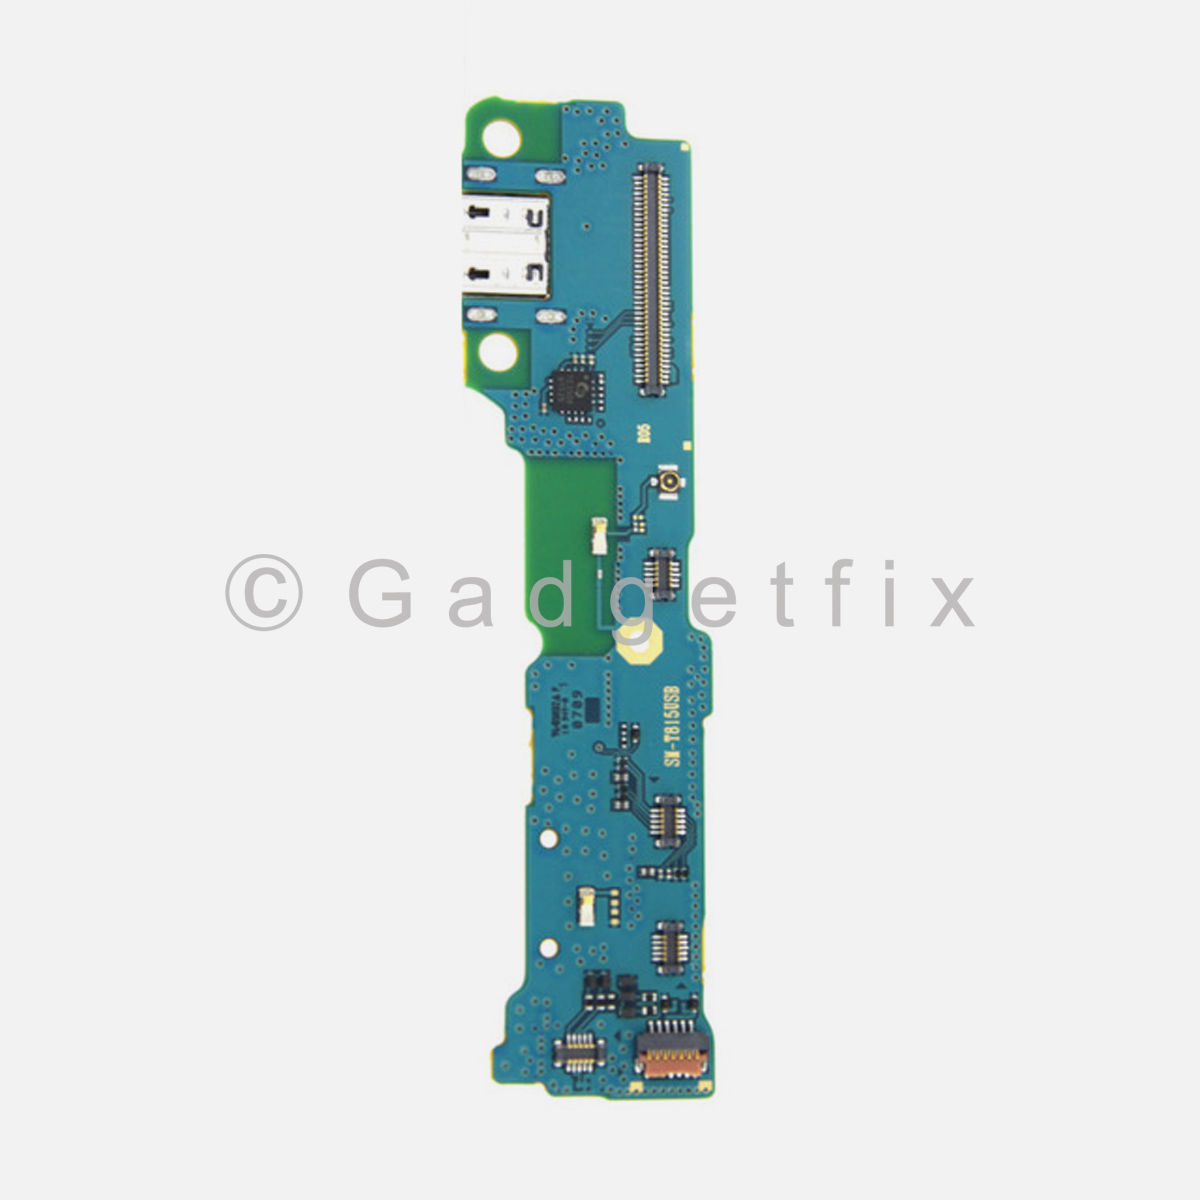 OEM Samsung Galaxy Tab S2 9.7 T810 T815 T817 T819 USB Charging Port Flex Cable